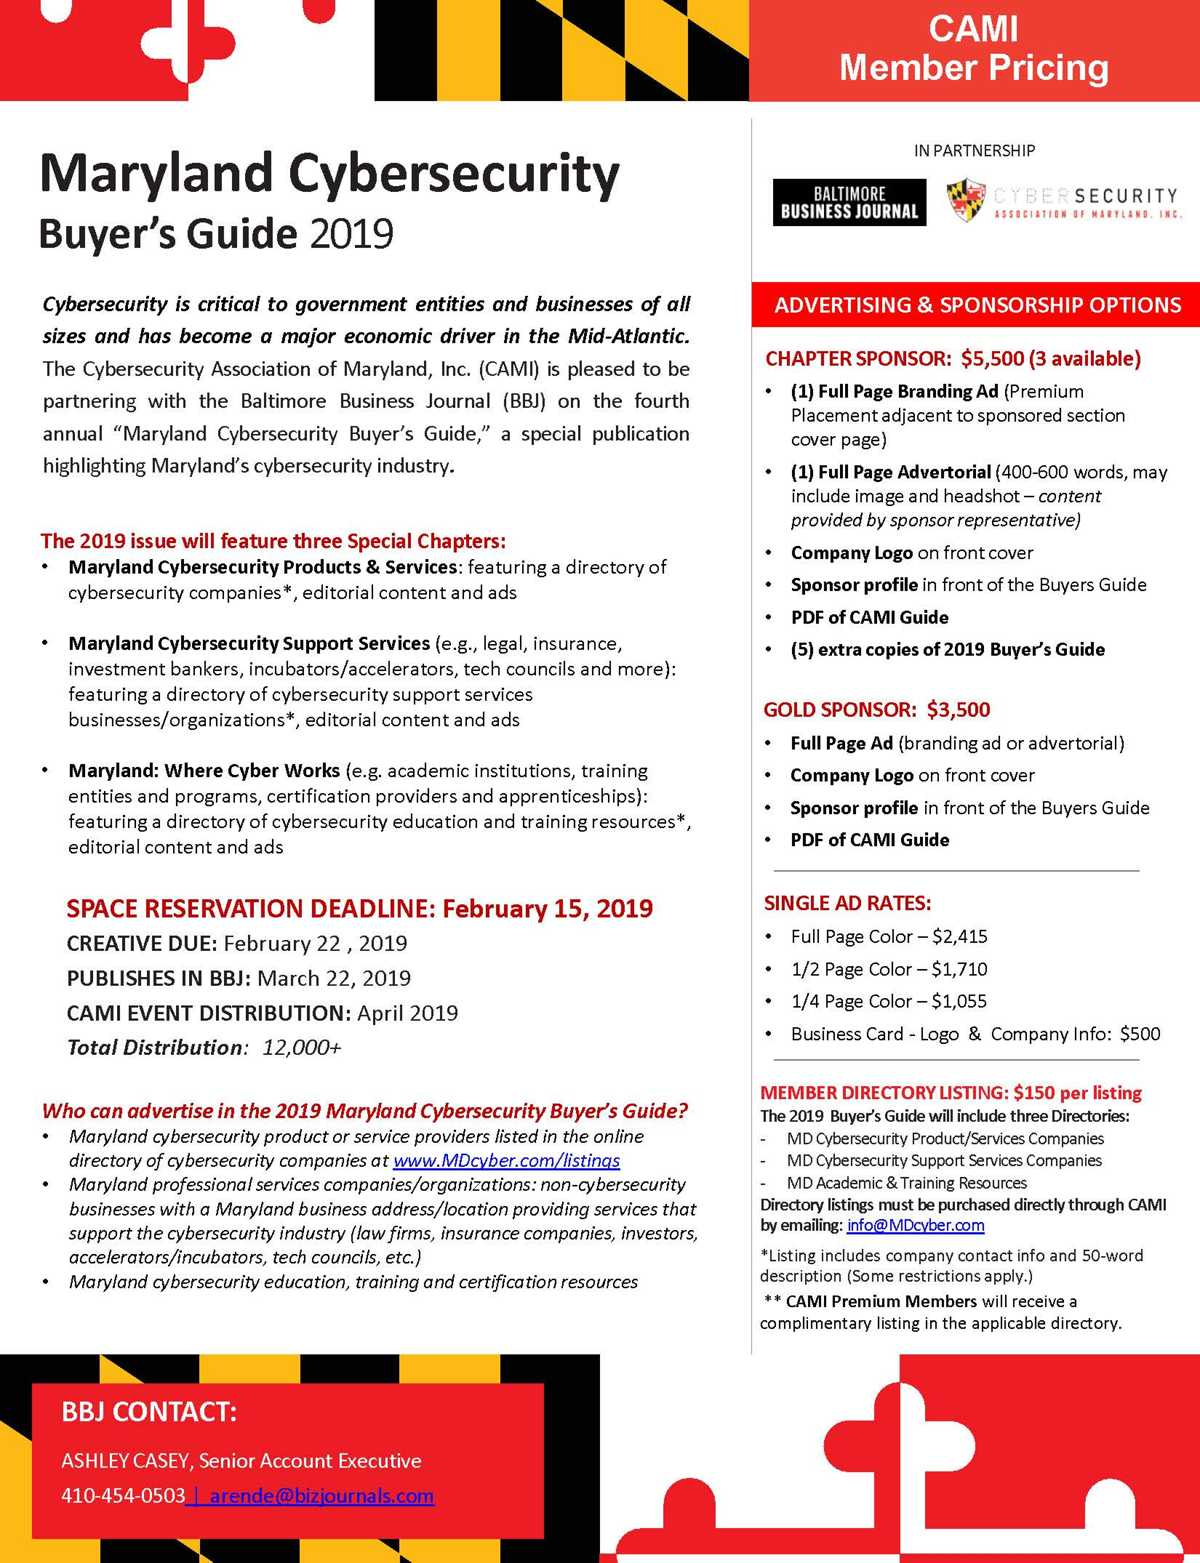 2019 Maryland Cybersecurity Buyer's Guide